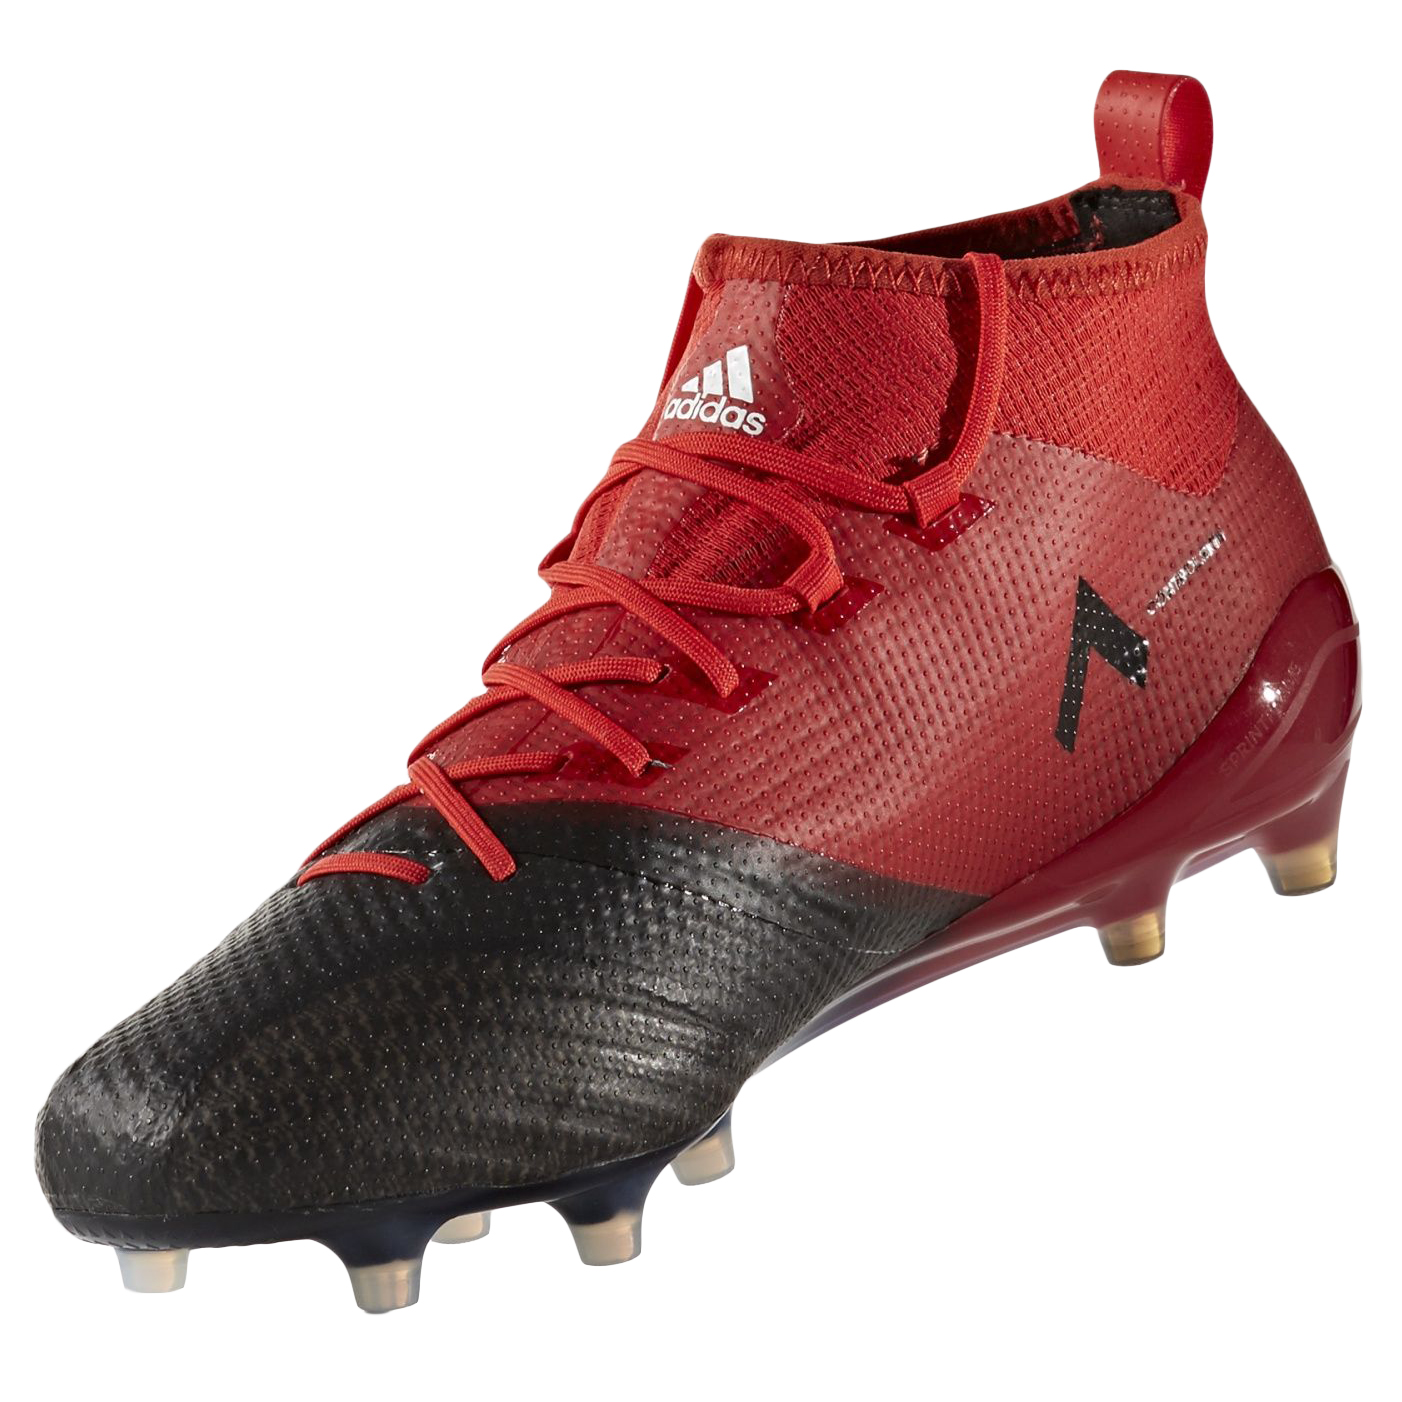 competitive price 369ee 2a3e3 ADIDAS ACE 17.1 PRIMEKNIT FG - gallery 3